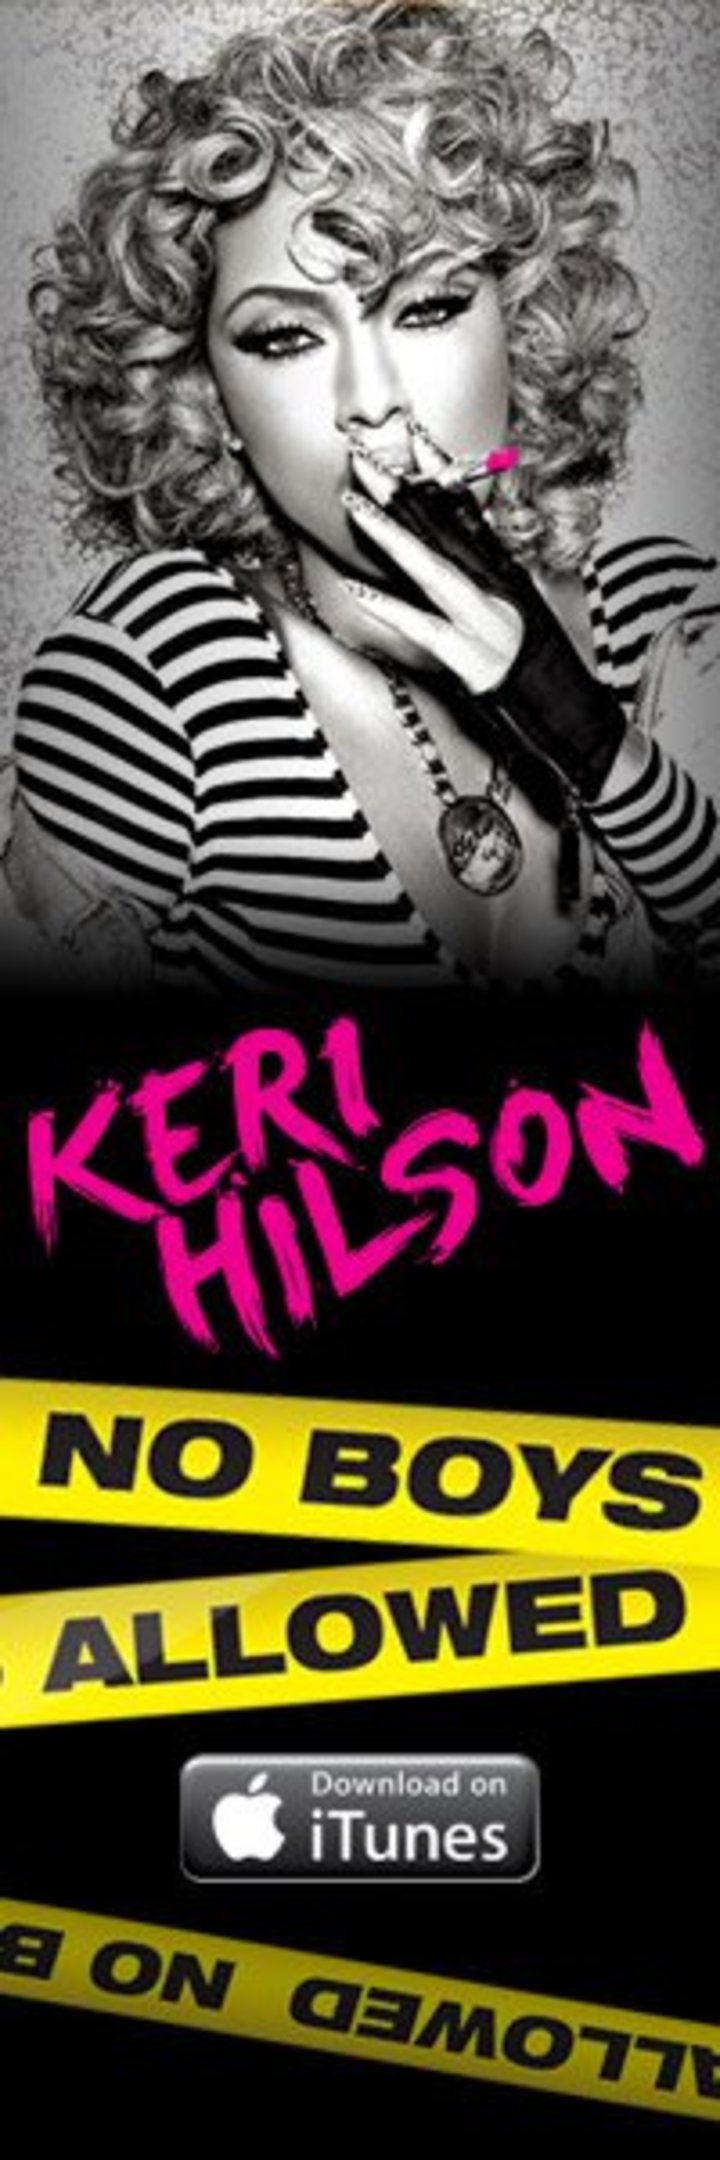 Keri Hilson Tour Dates